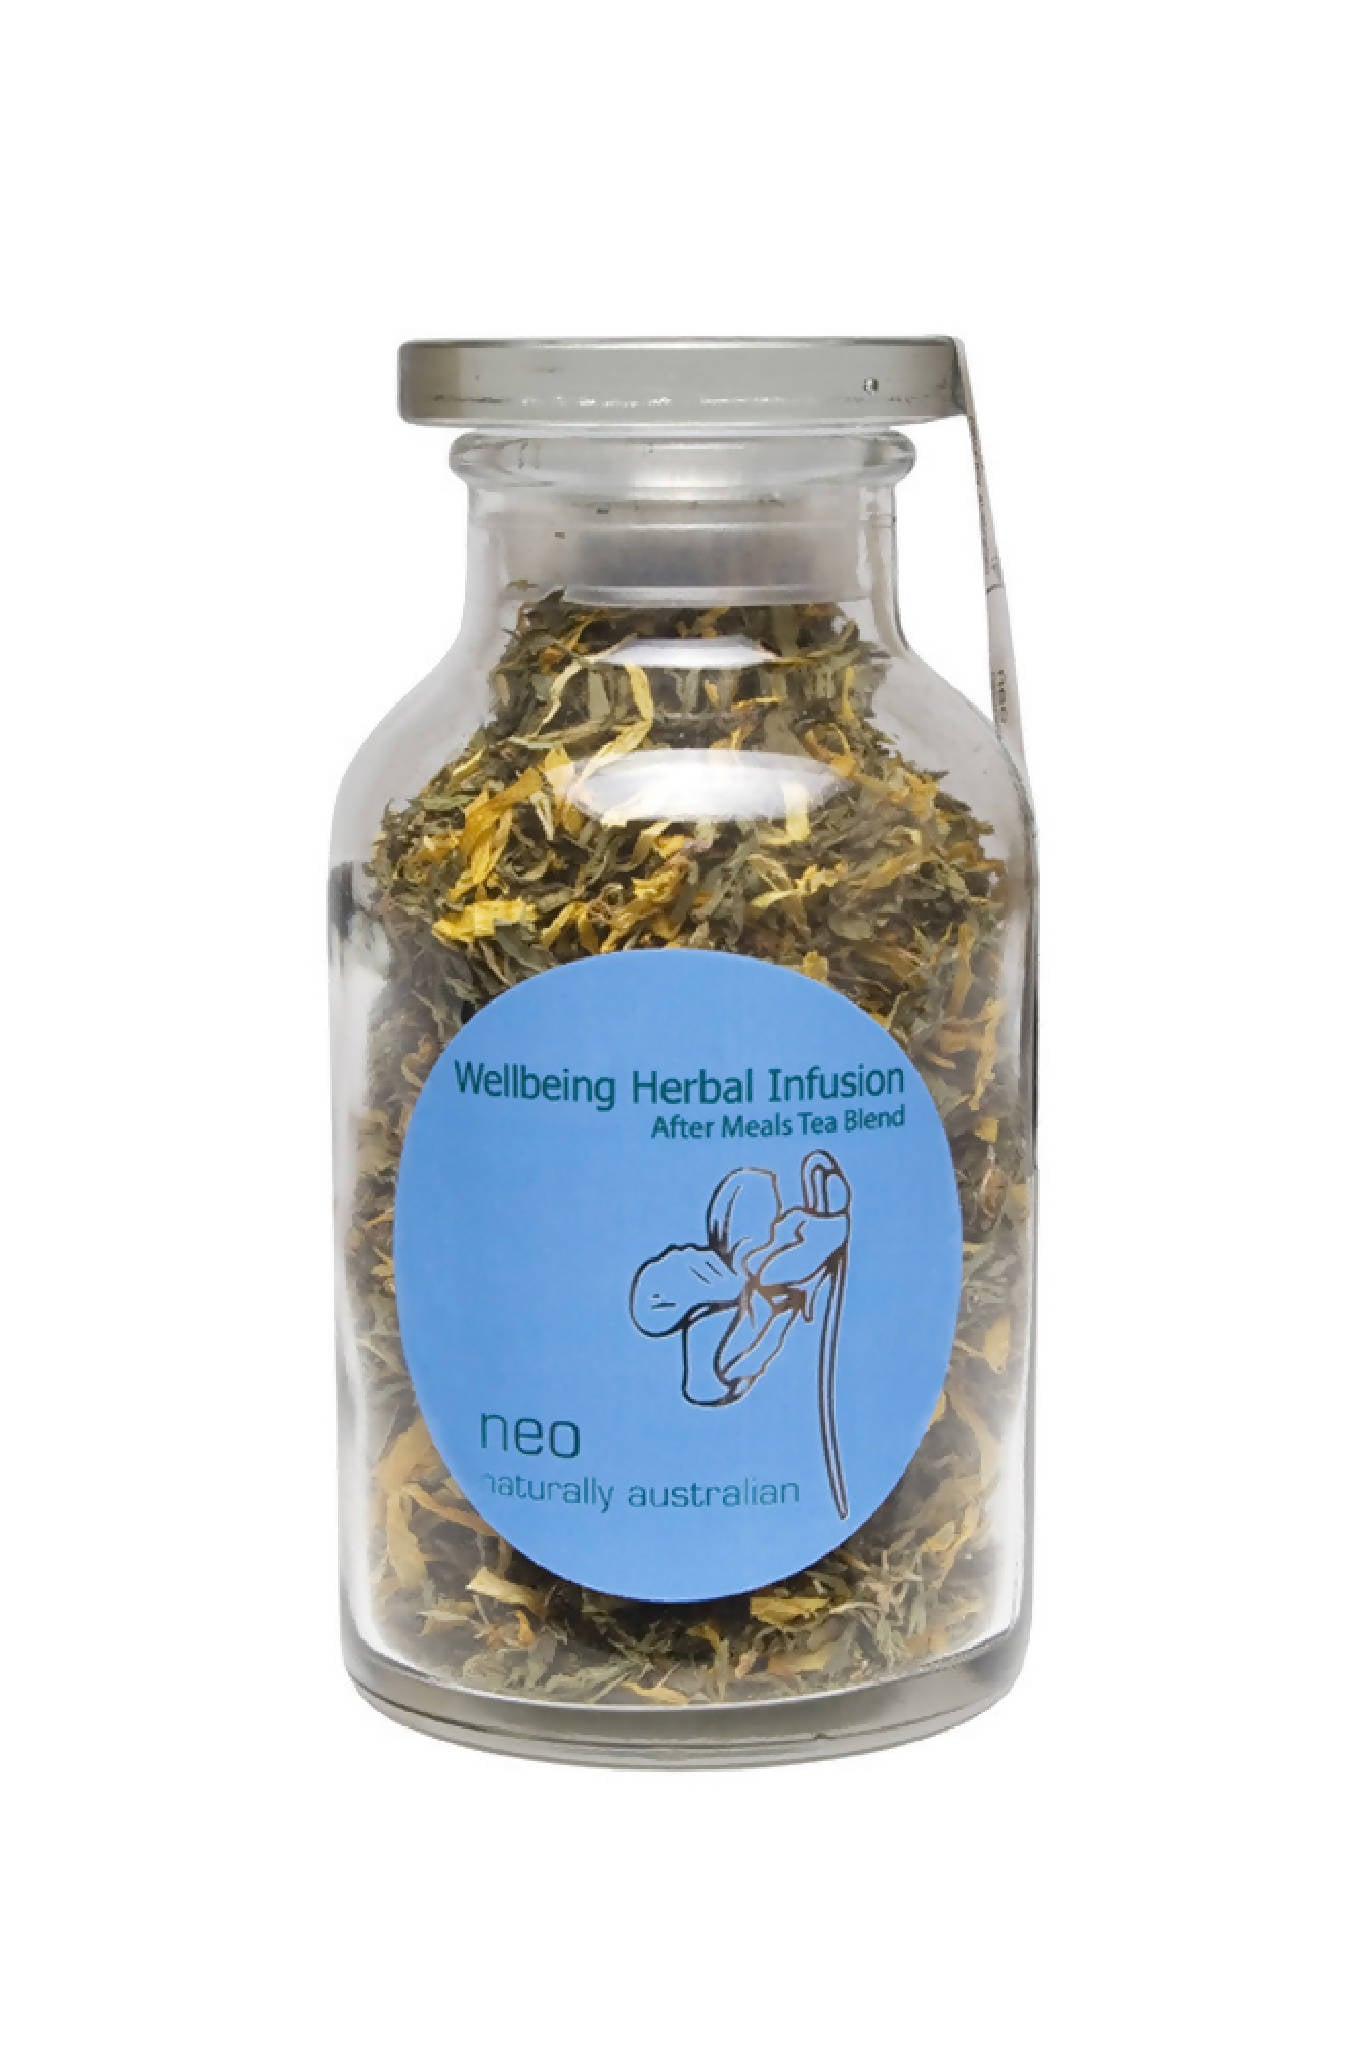 Neo Wellbeing After Meals Digestive Tea Jar 65g